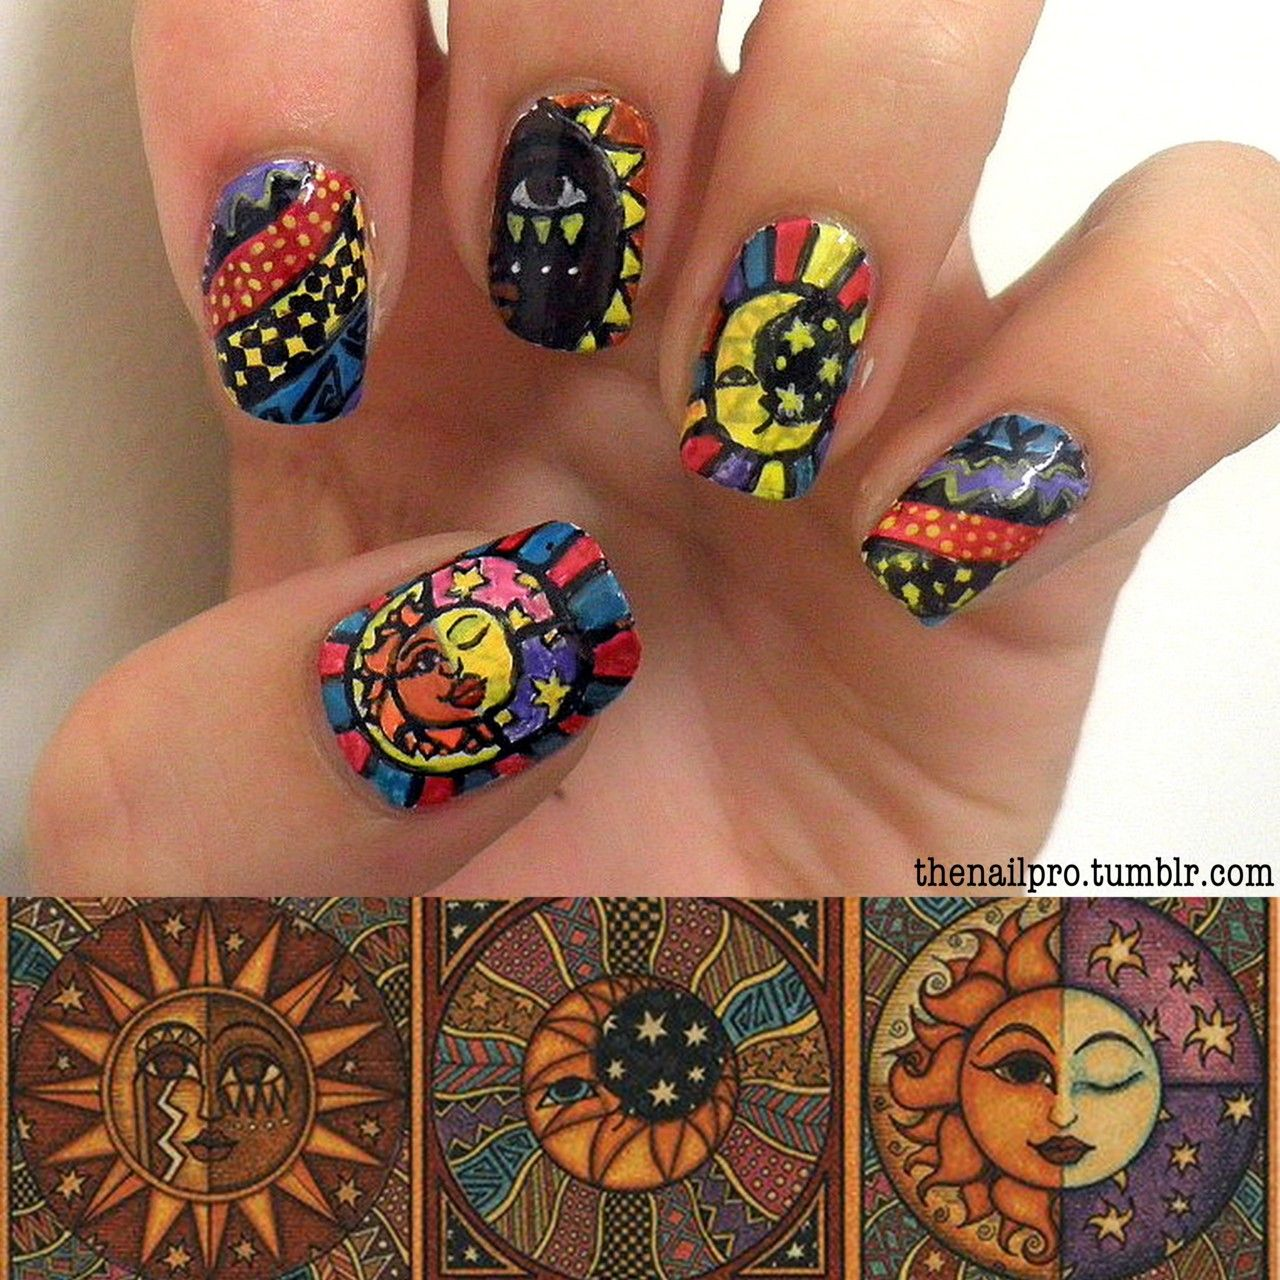 Sun and the Moon Nail Art - Food For The Nails - Sun And The Moon Nail Art - Food For The Nails.Nail It